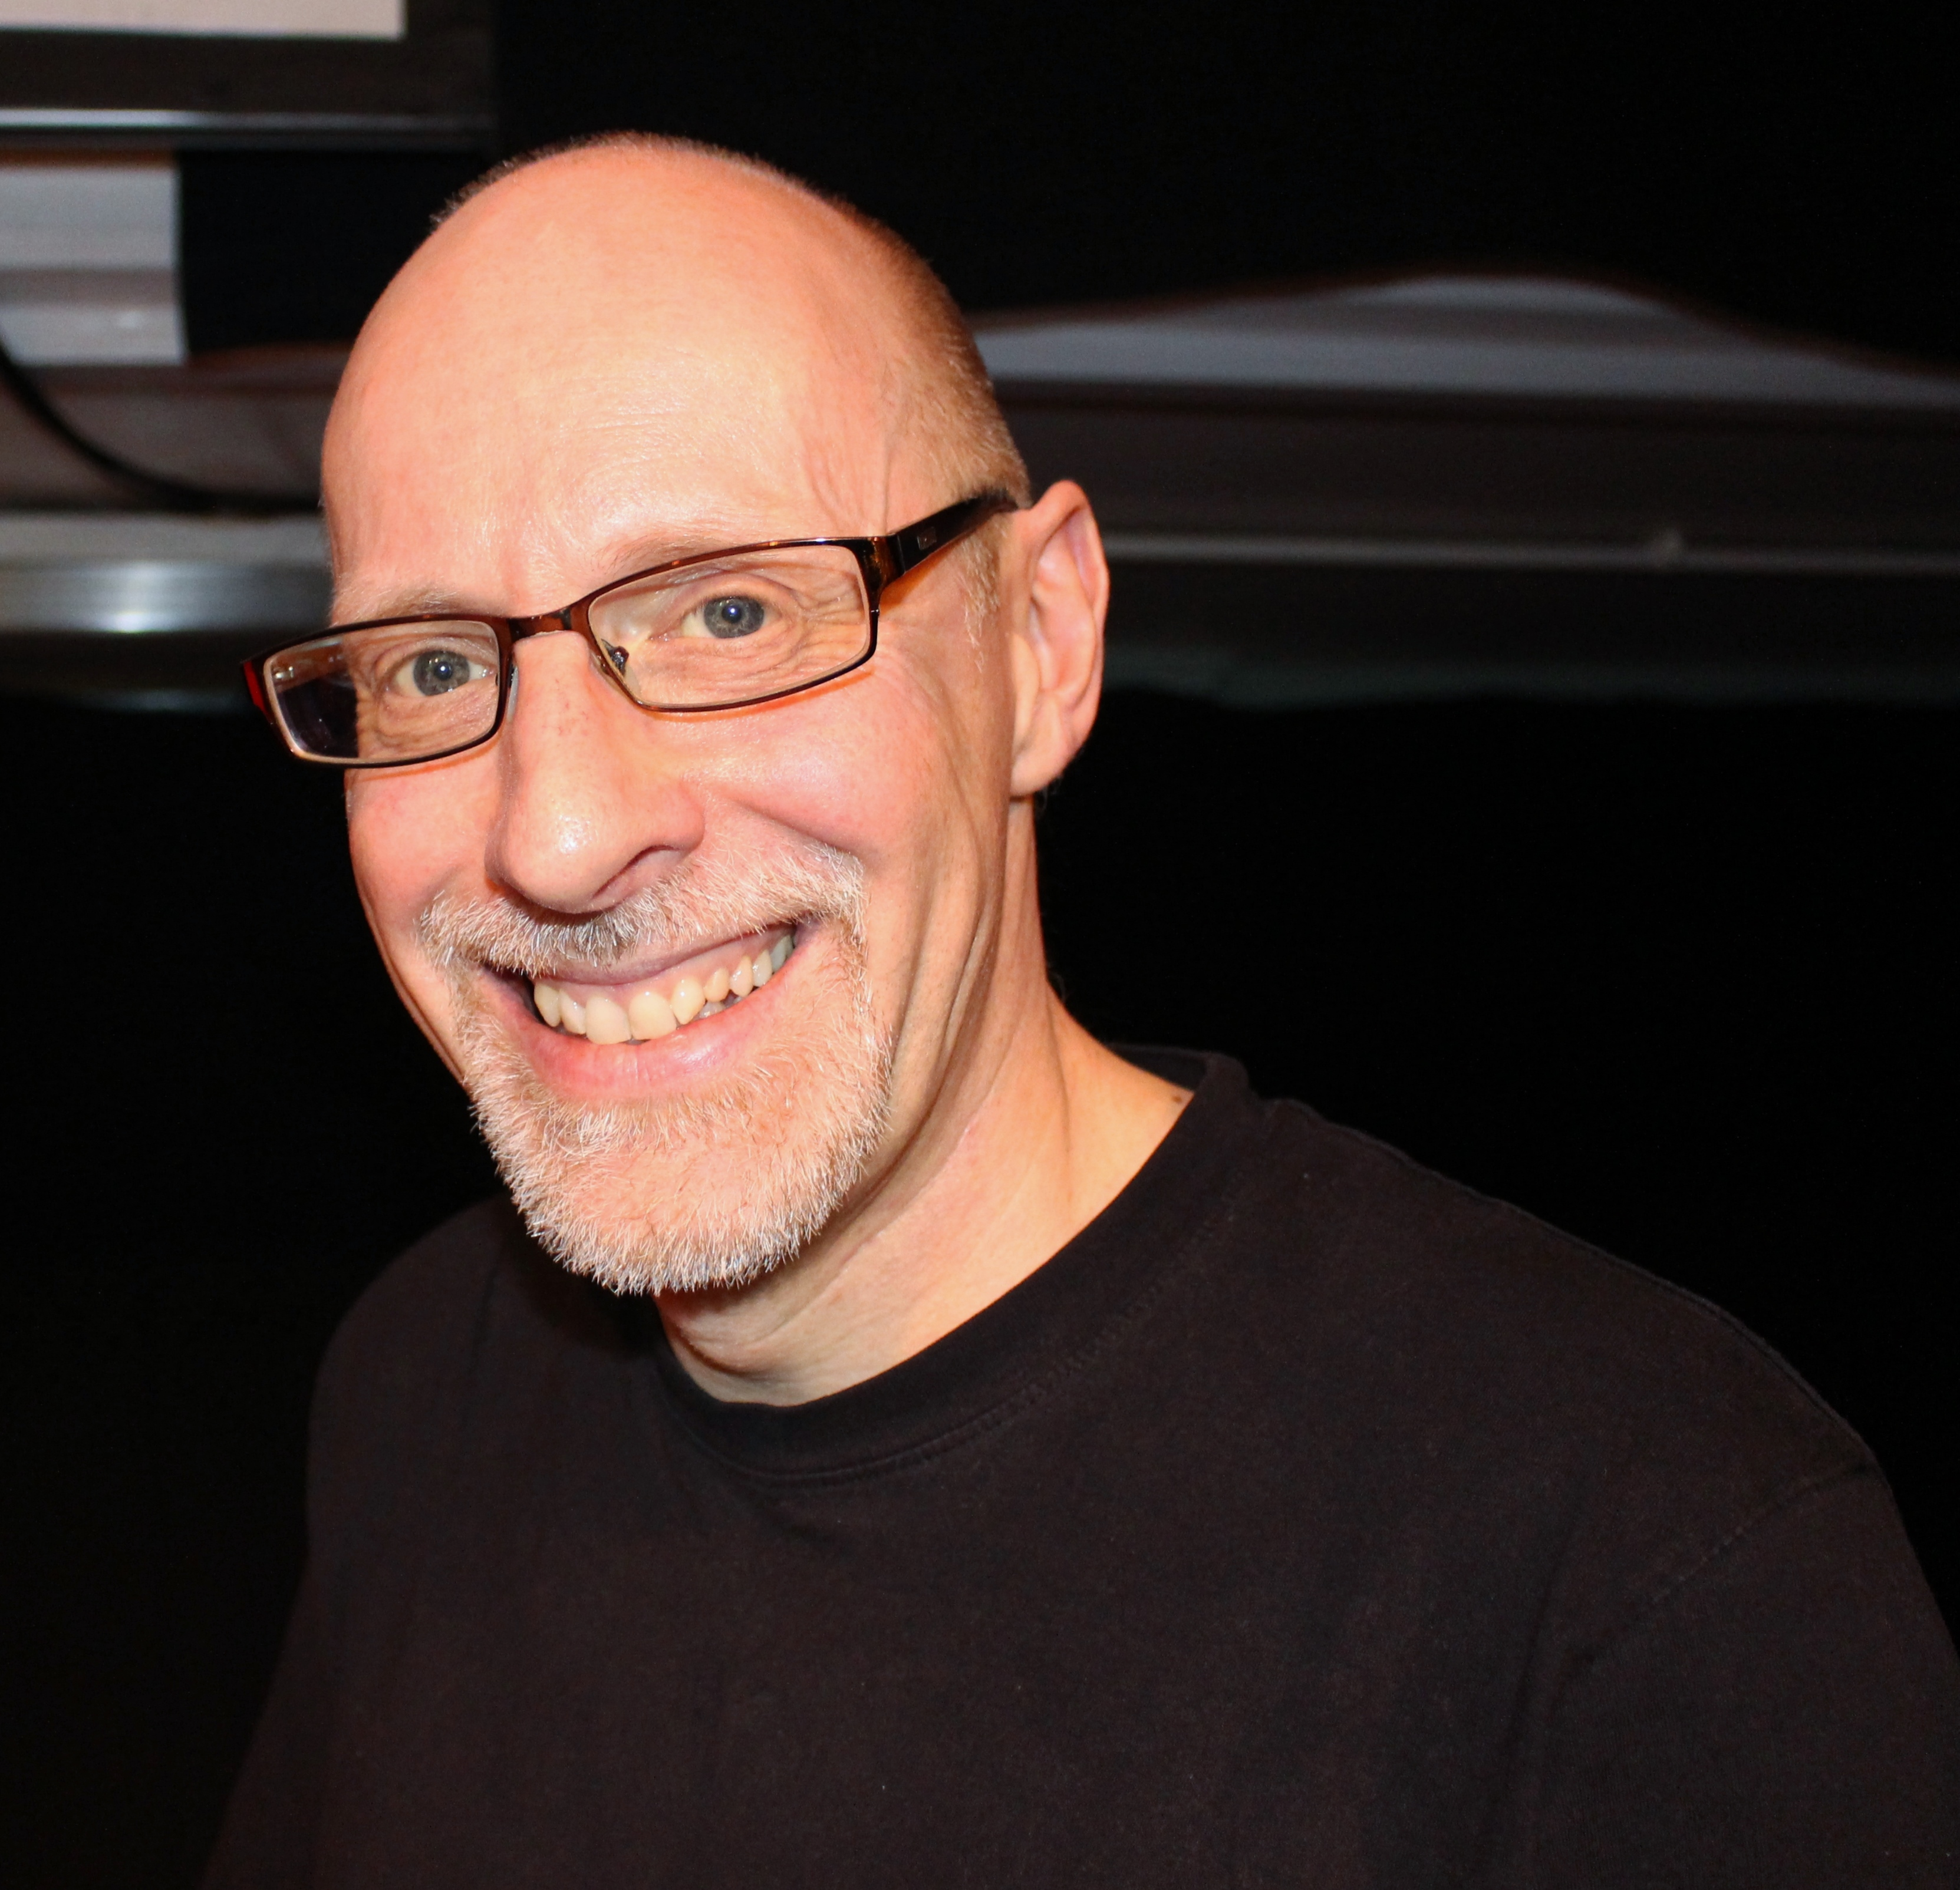 59 Seconds Richard Wiseman learning live 2016 announces richard wiseman as second